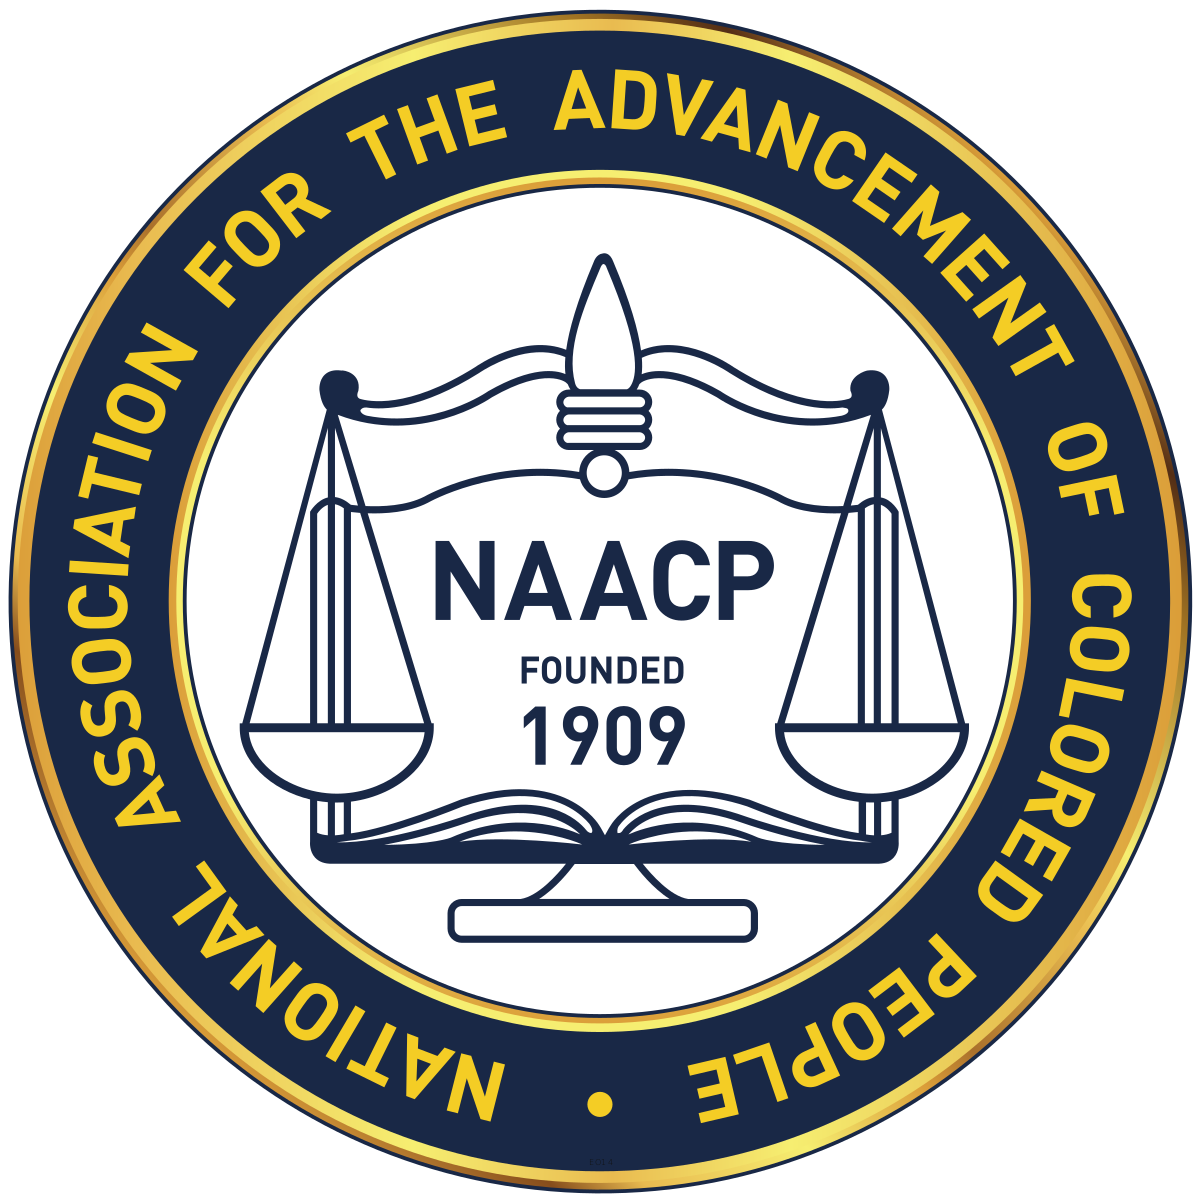 National Association for the Advancement of Colored People logo